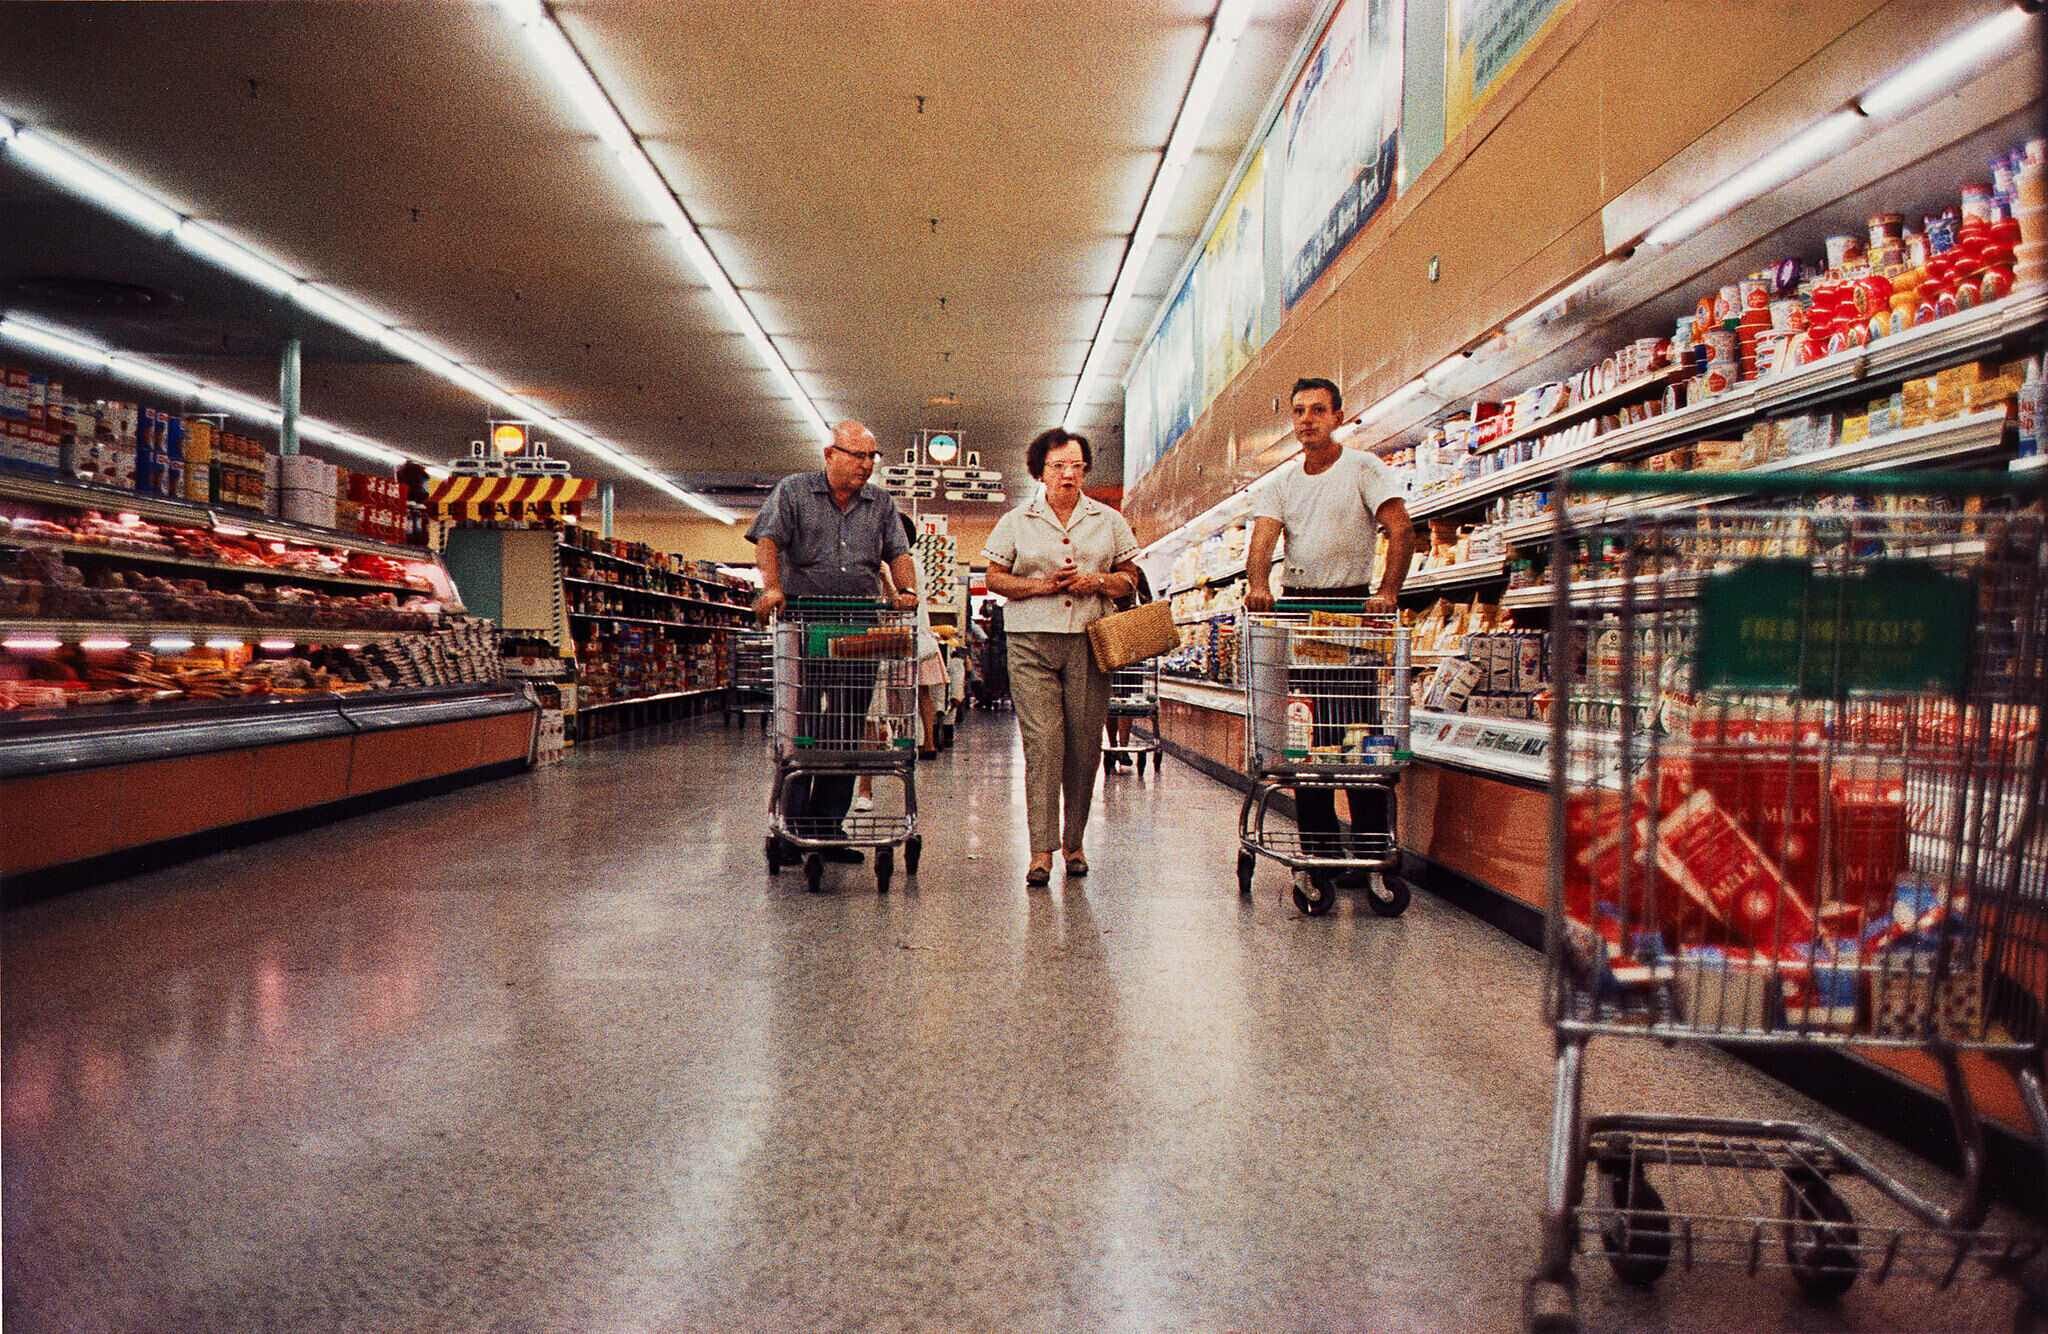 Three people in a supermarket aisle.